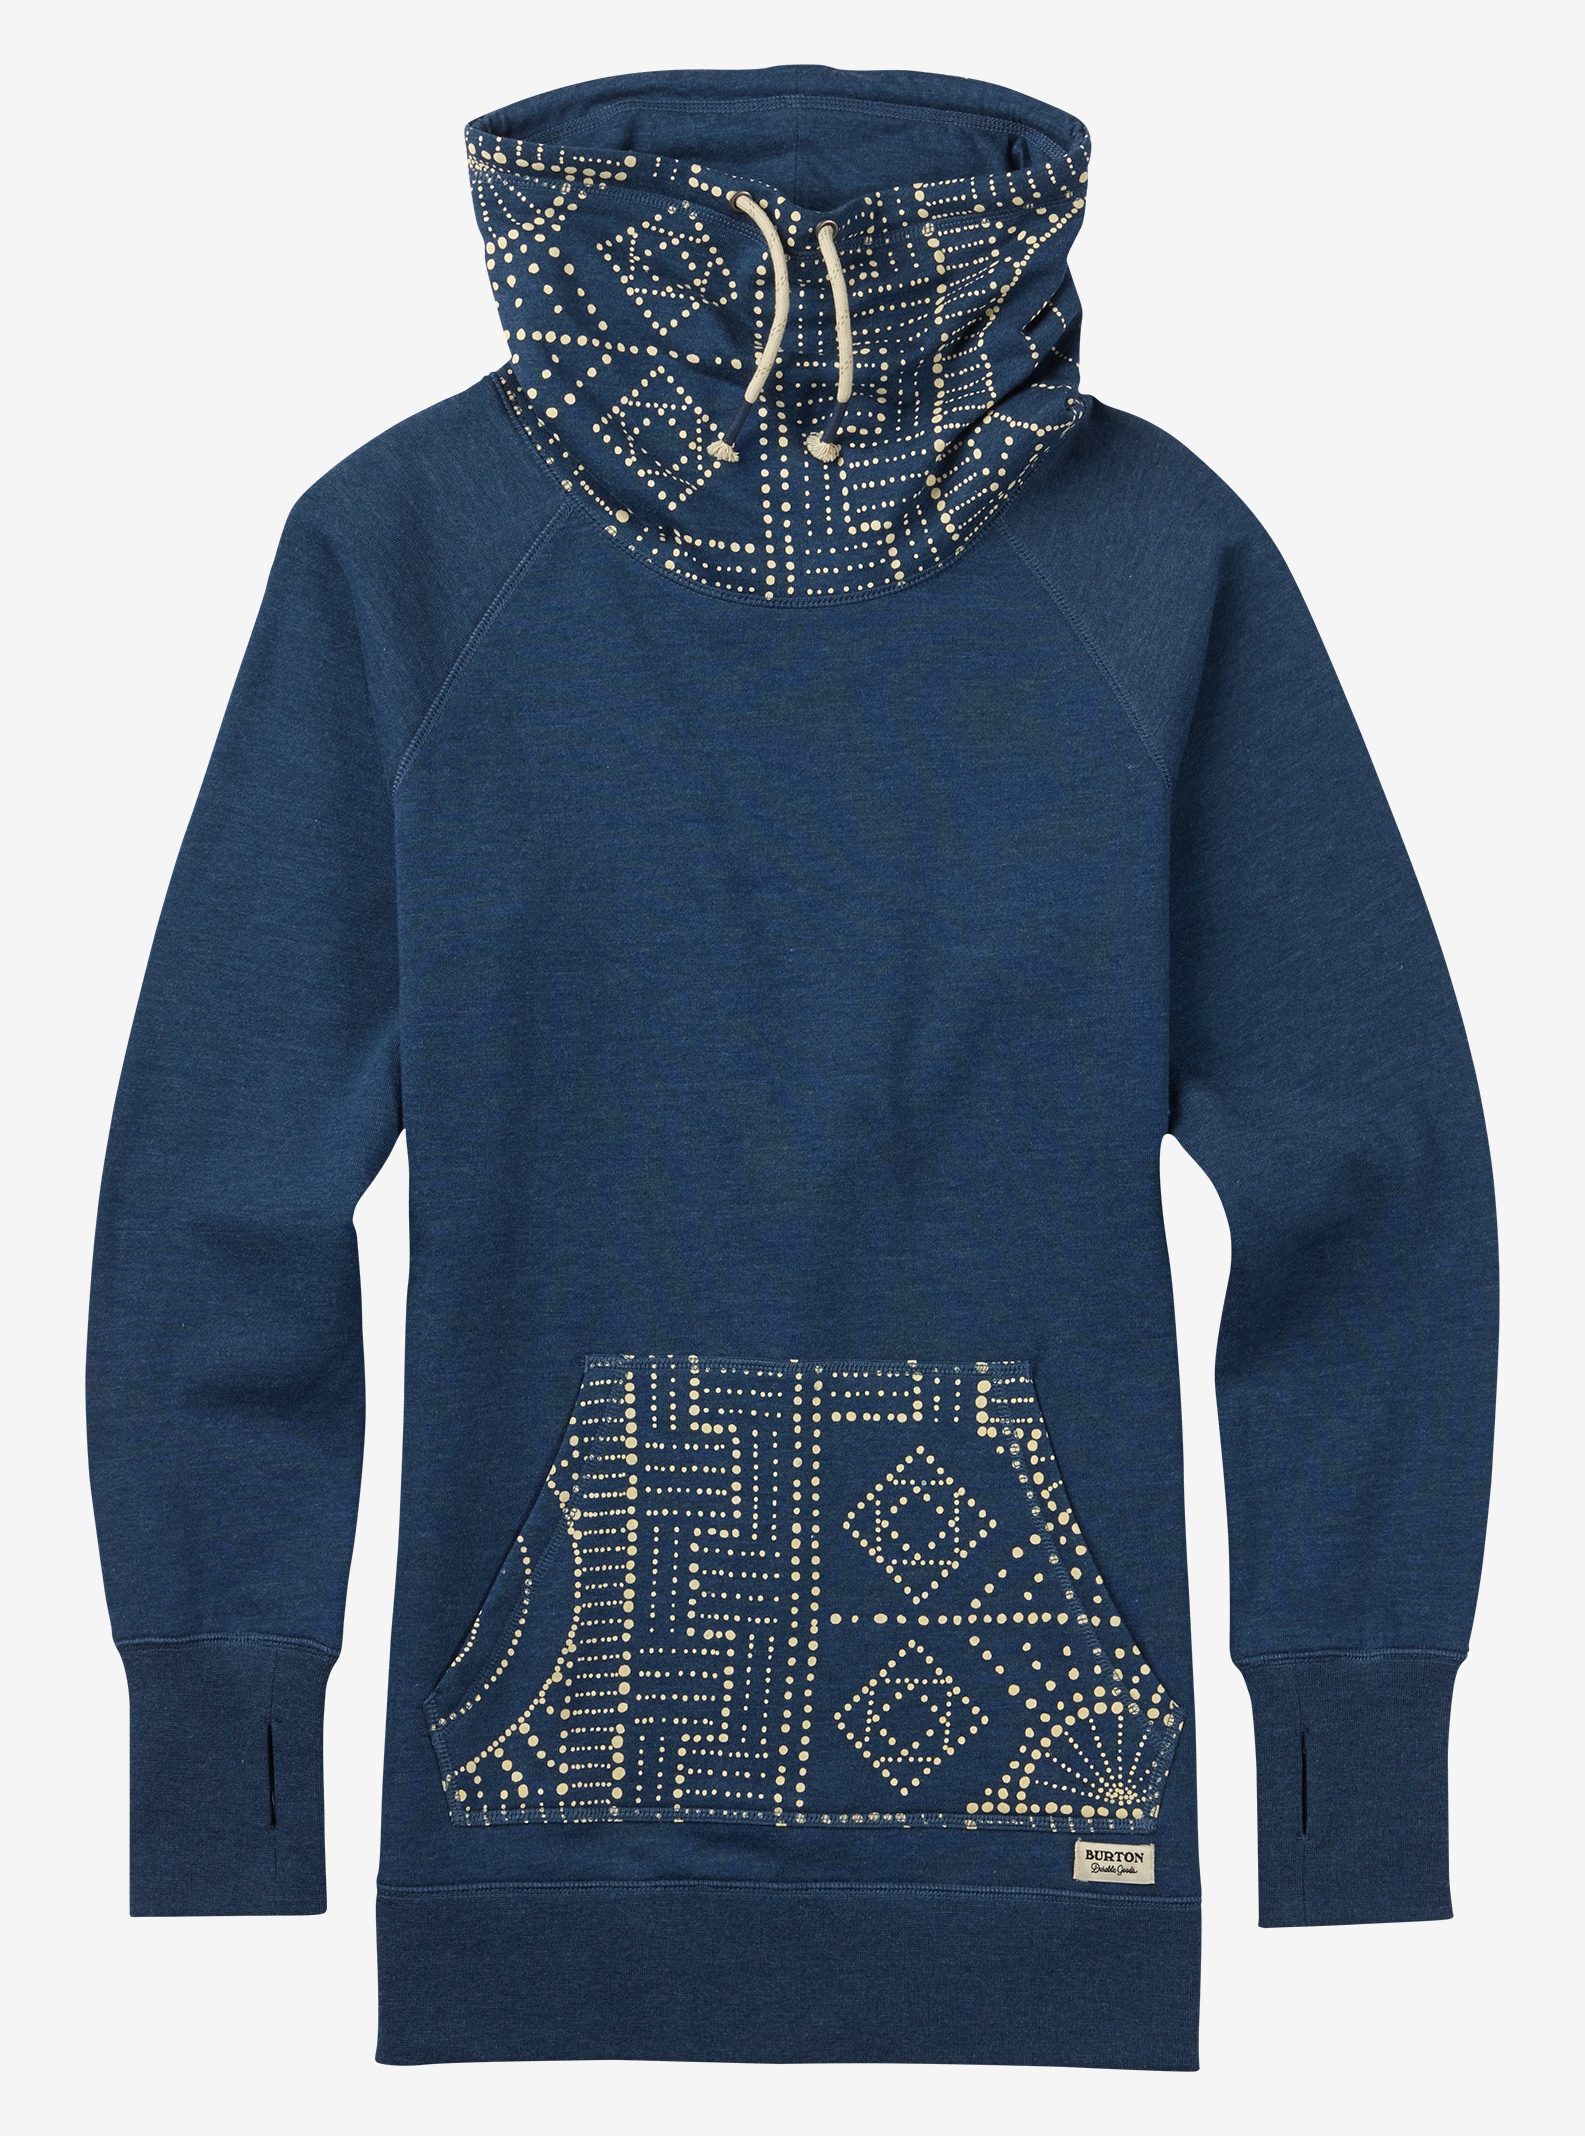 Burton Foxtrot Fleece shown in Indigo Heather